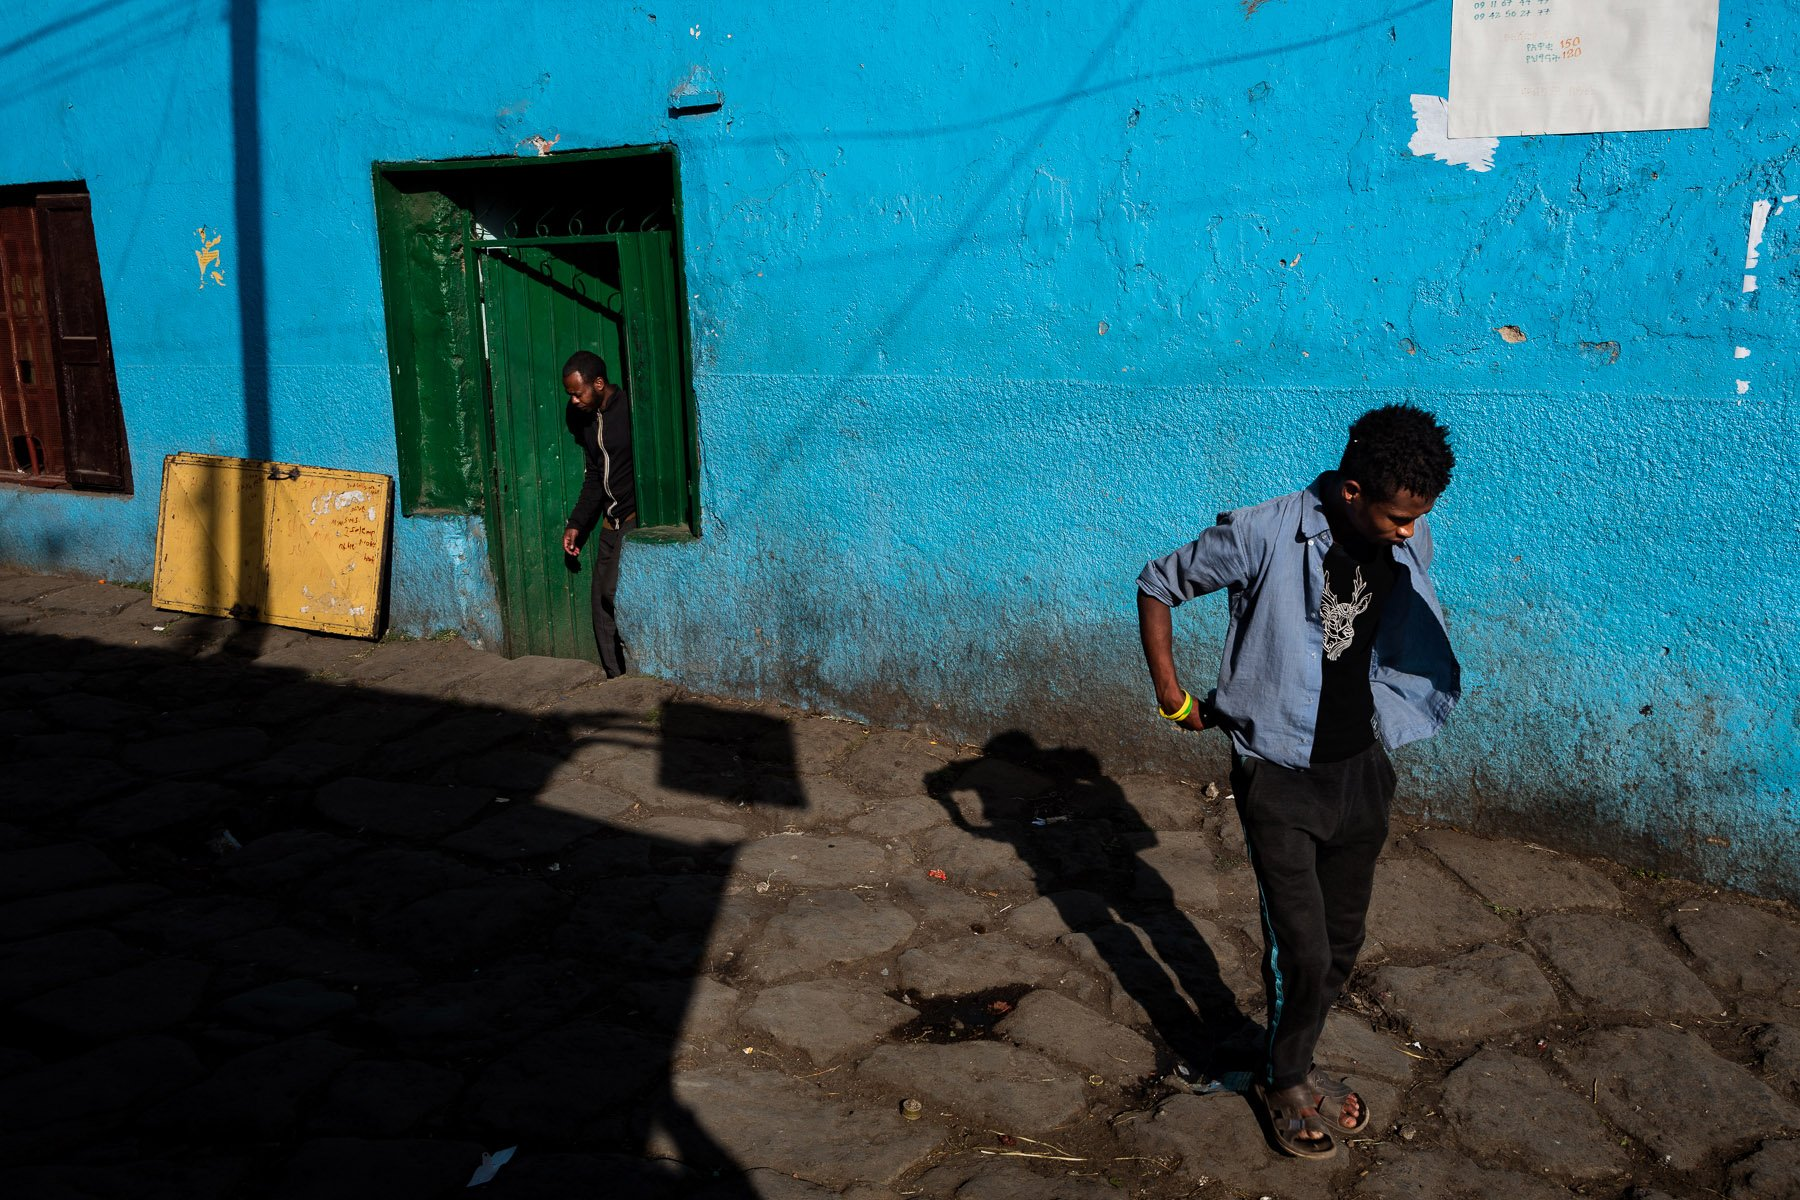 street photography, colorful images with high contrast and shadows in Ethiopia, Africa, by ivan Margot